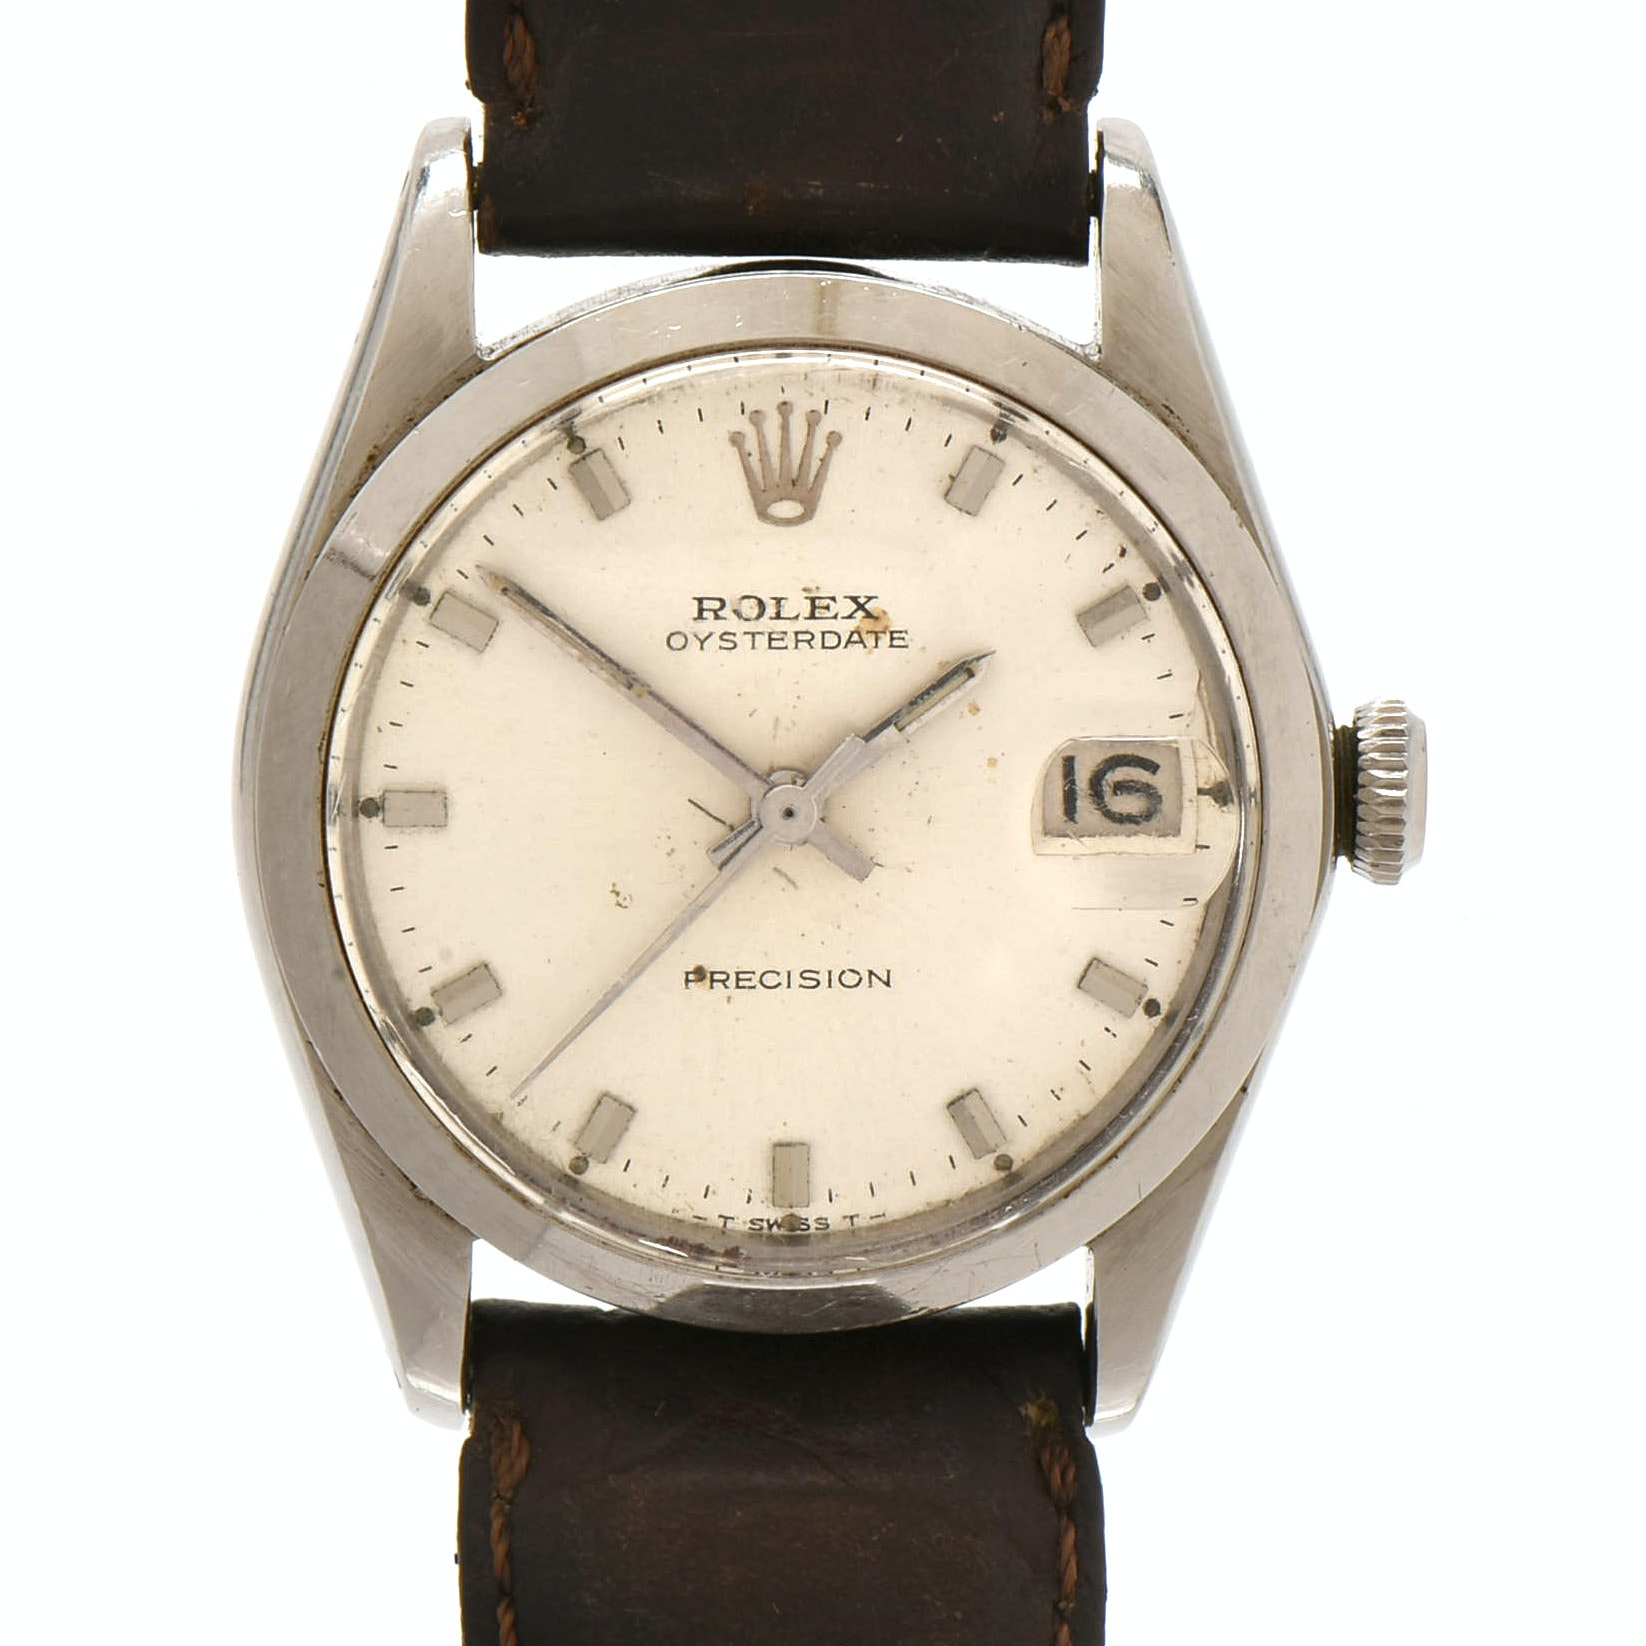 1966 Rolex Oyster Date 6466 Stainless Steel Wristwatch